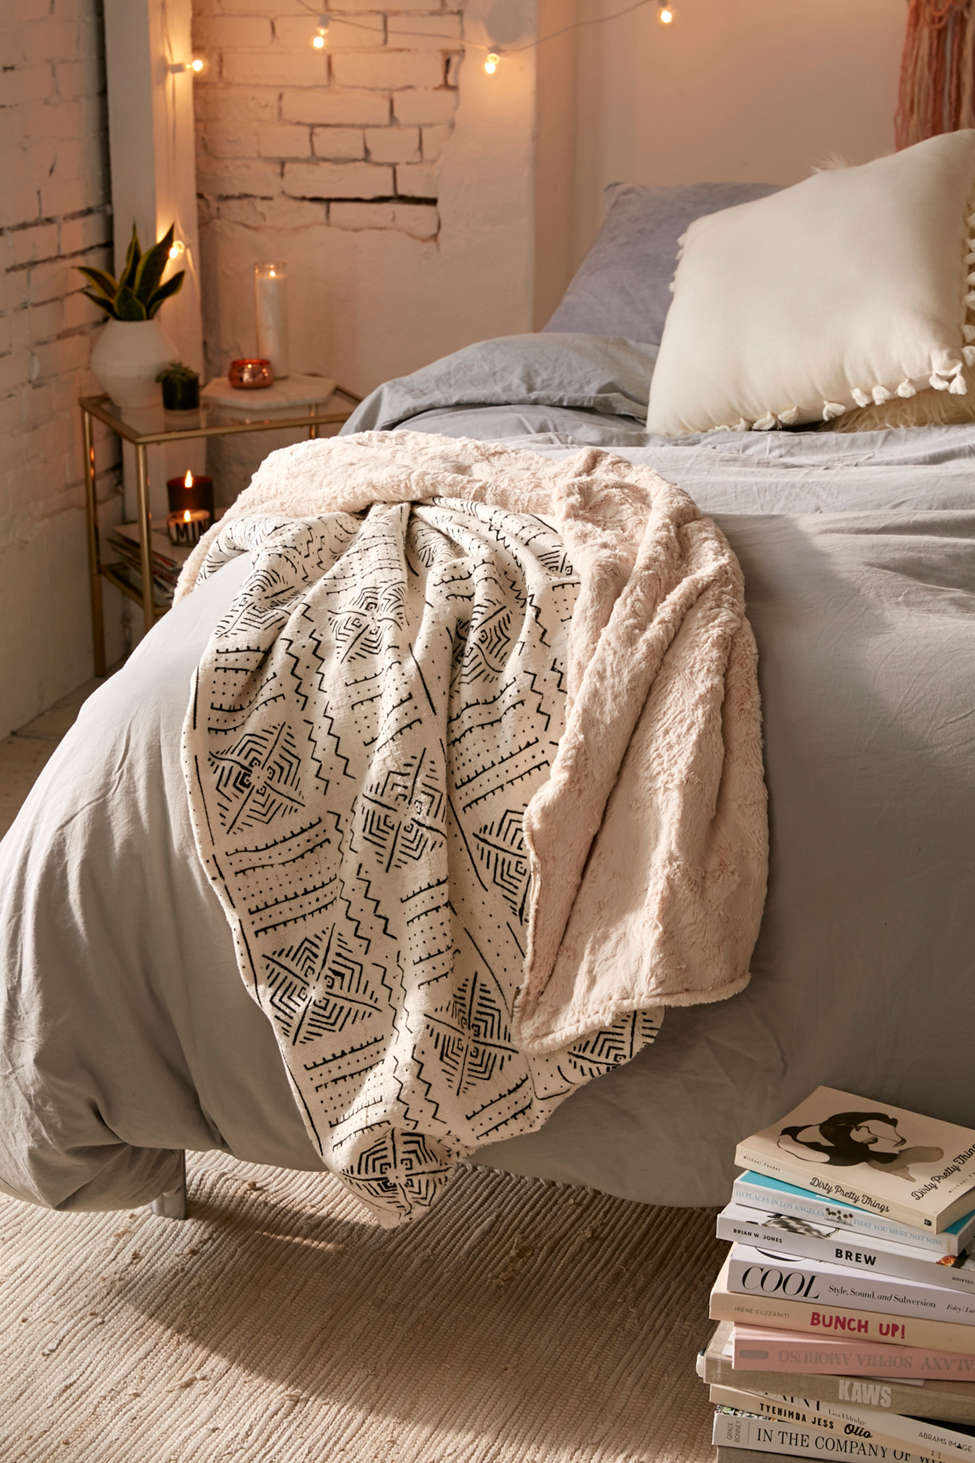 Slide View: 1: Cozy Nomad Mudcloth Faux Fur Throw Blanket